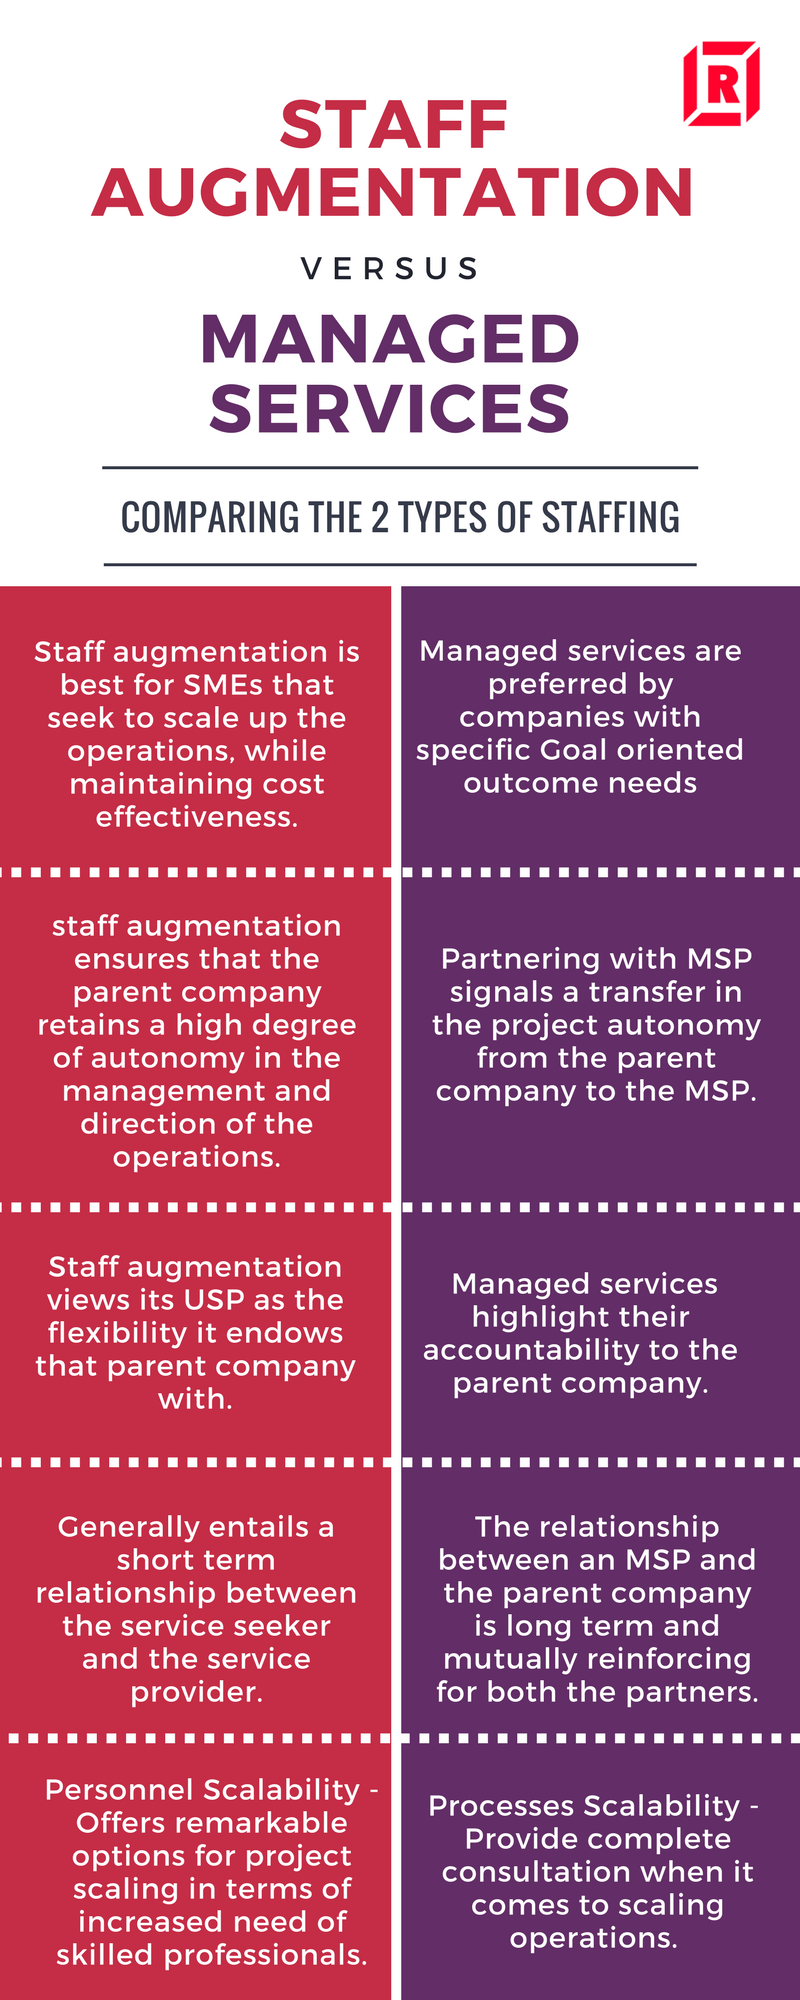 Staff Augmentation Services vs Managed Services